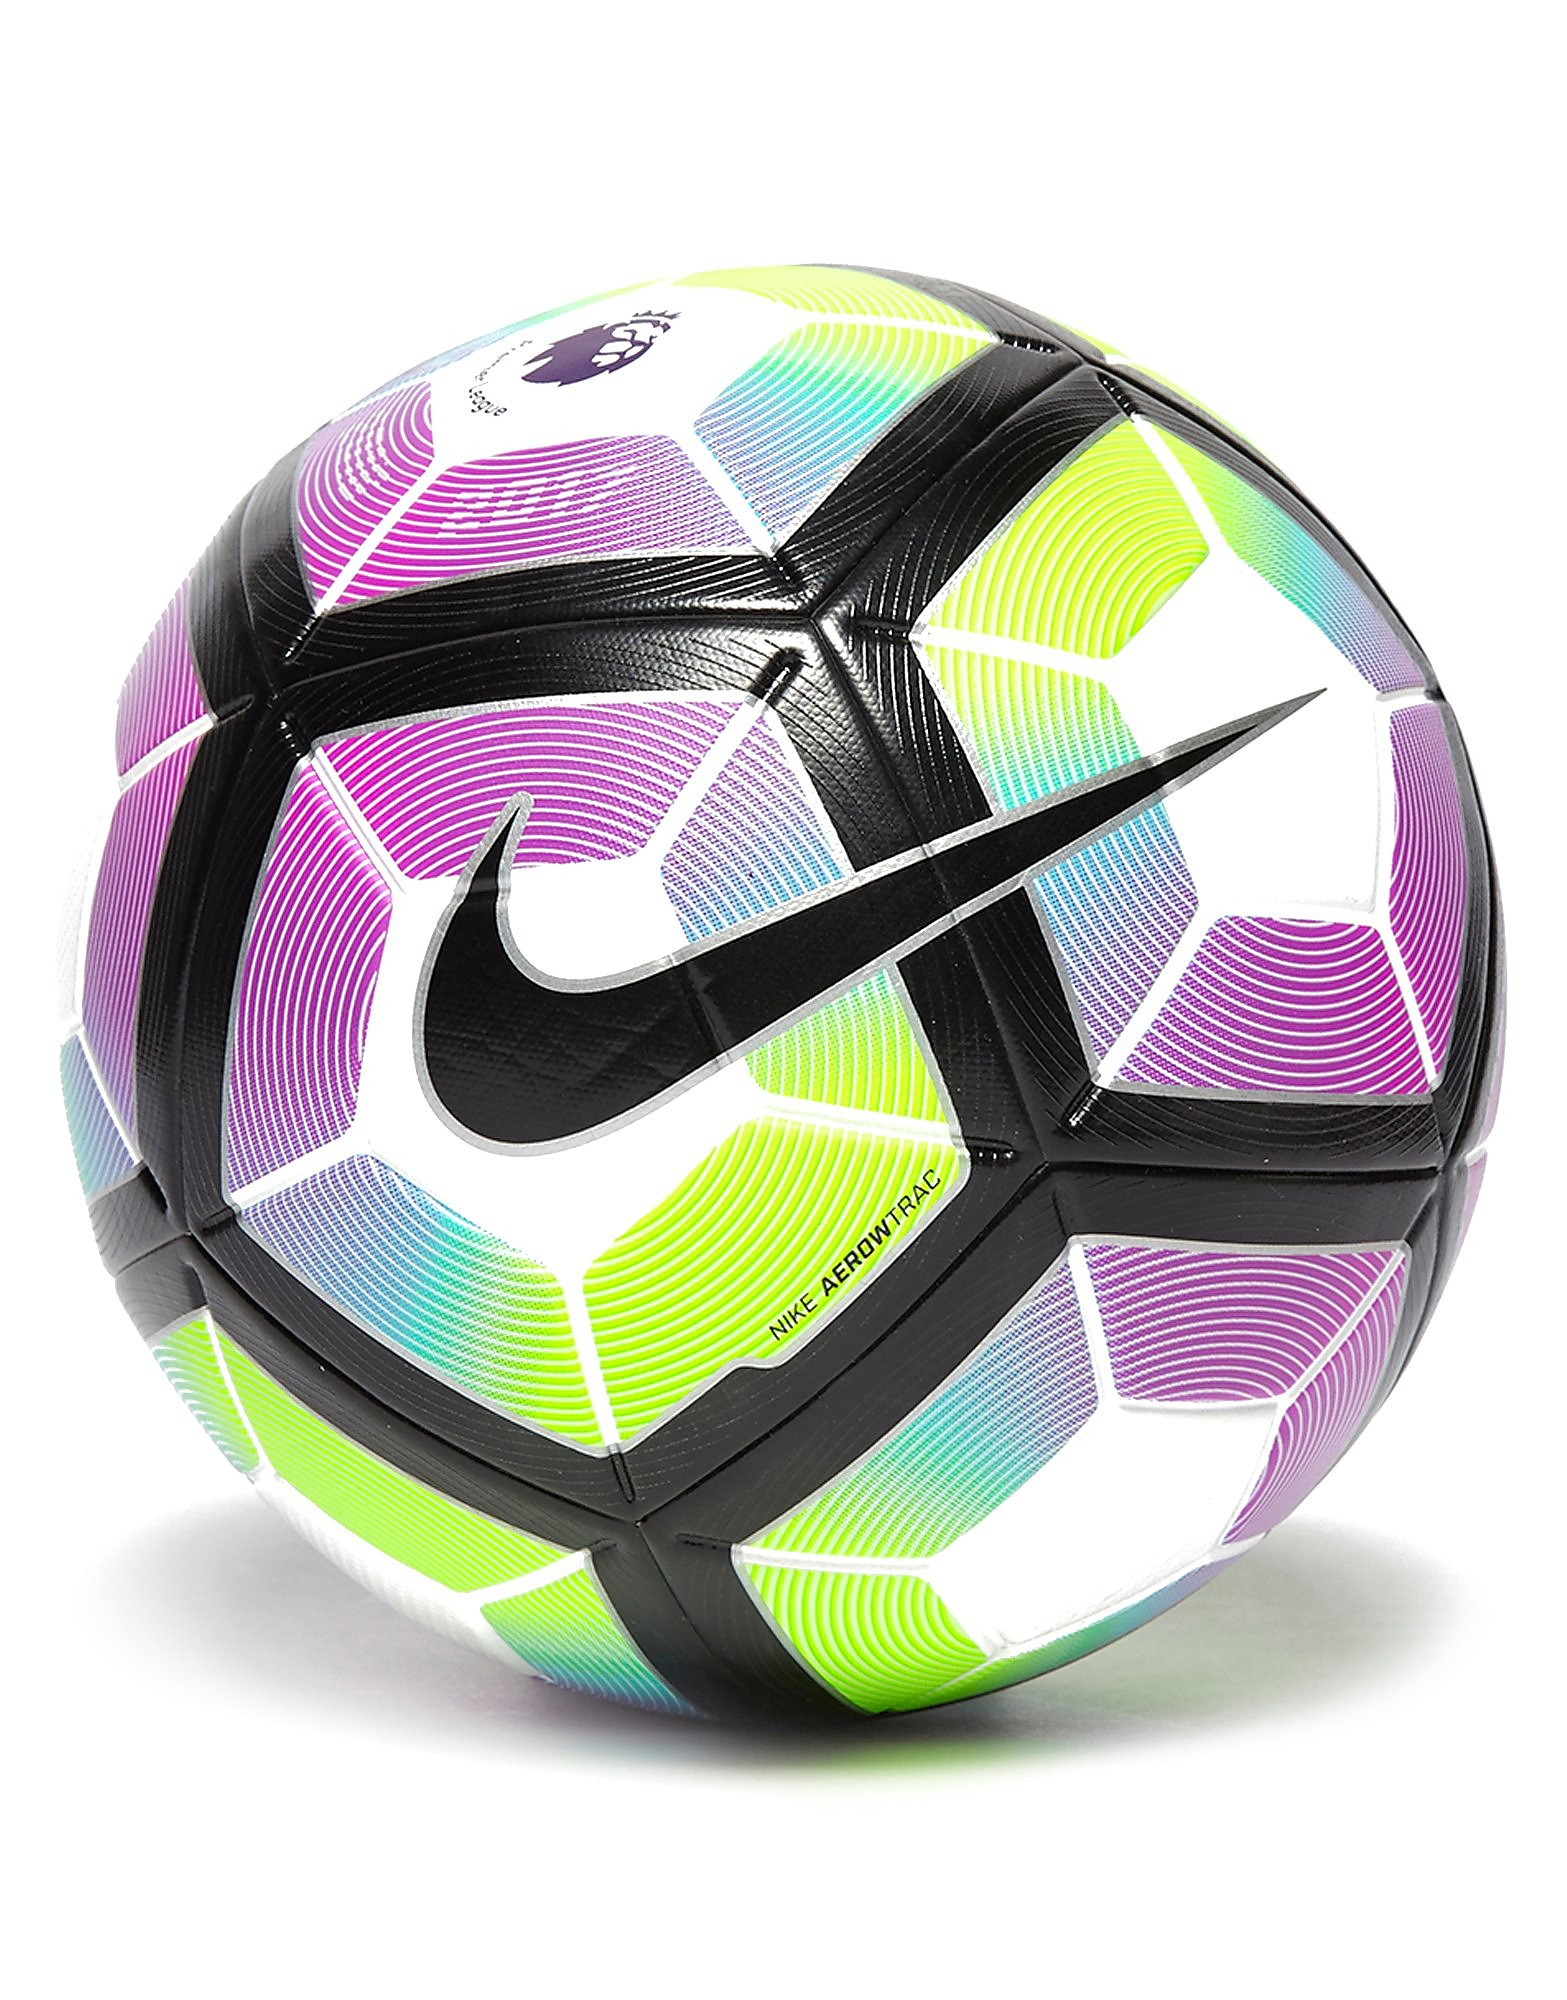 Nike Ordem 4 Premier League 2016/17 Football